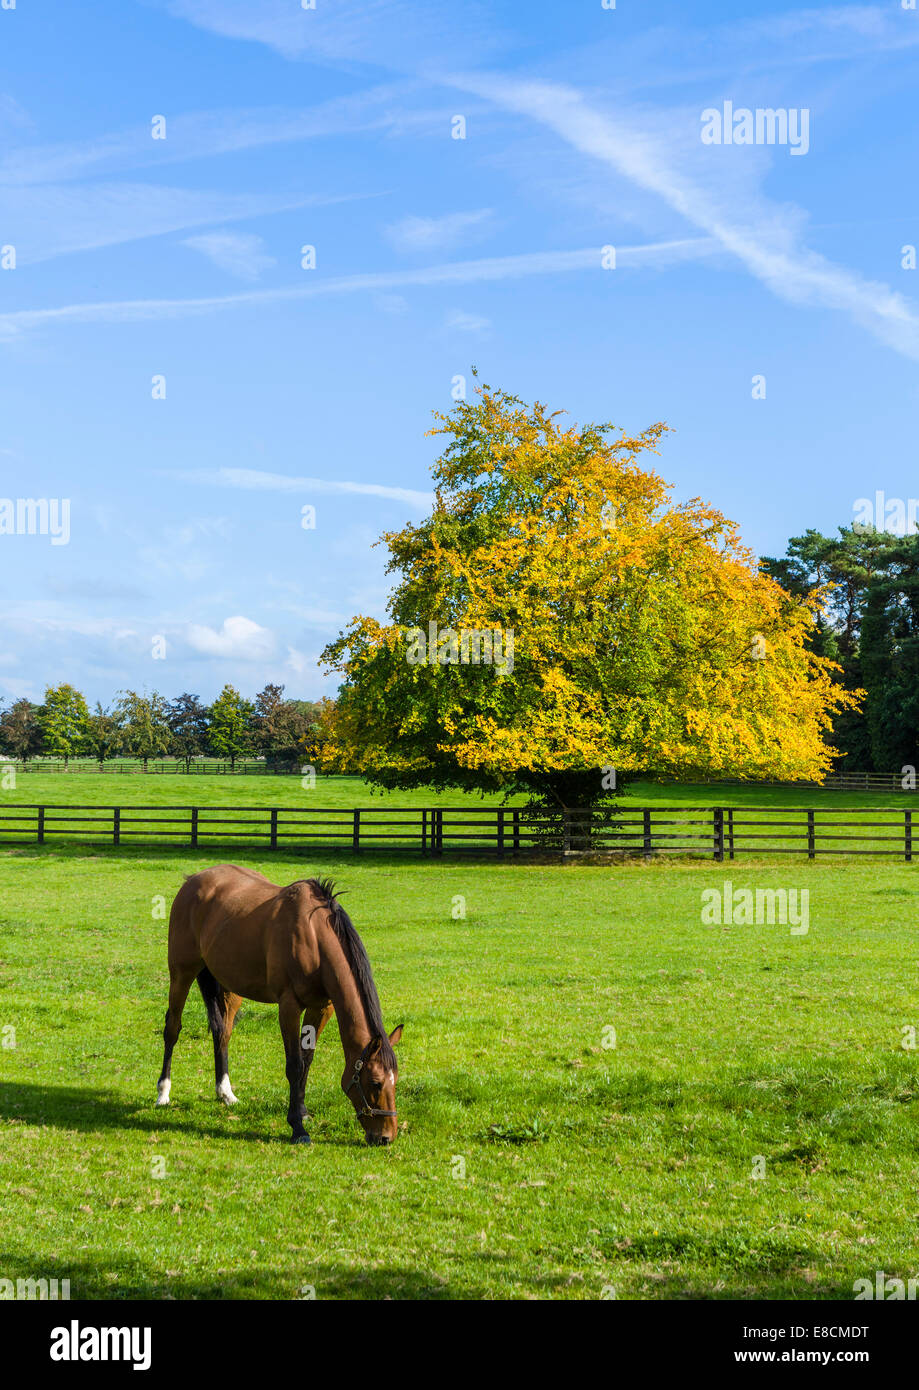 Irish National Stud: Horse At The Irish National Stud Breeding Facility, Tully